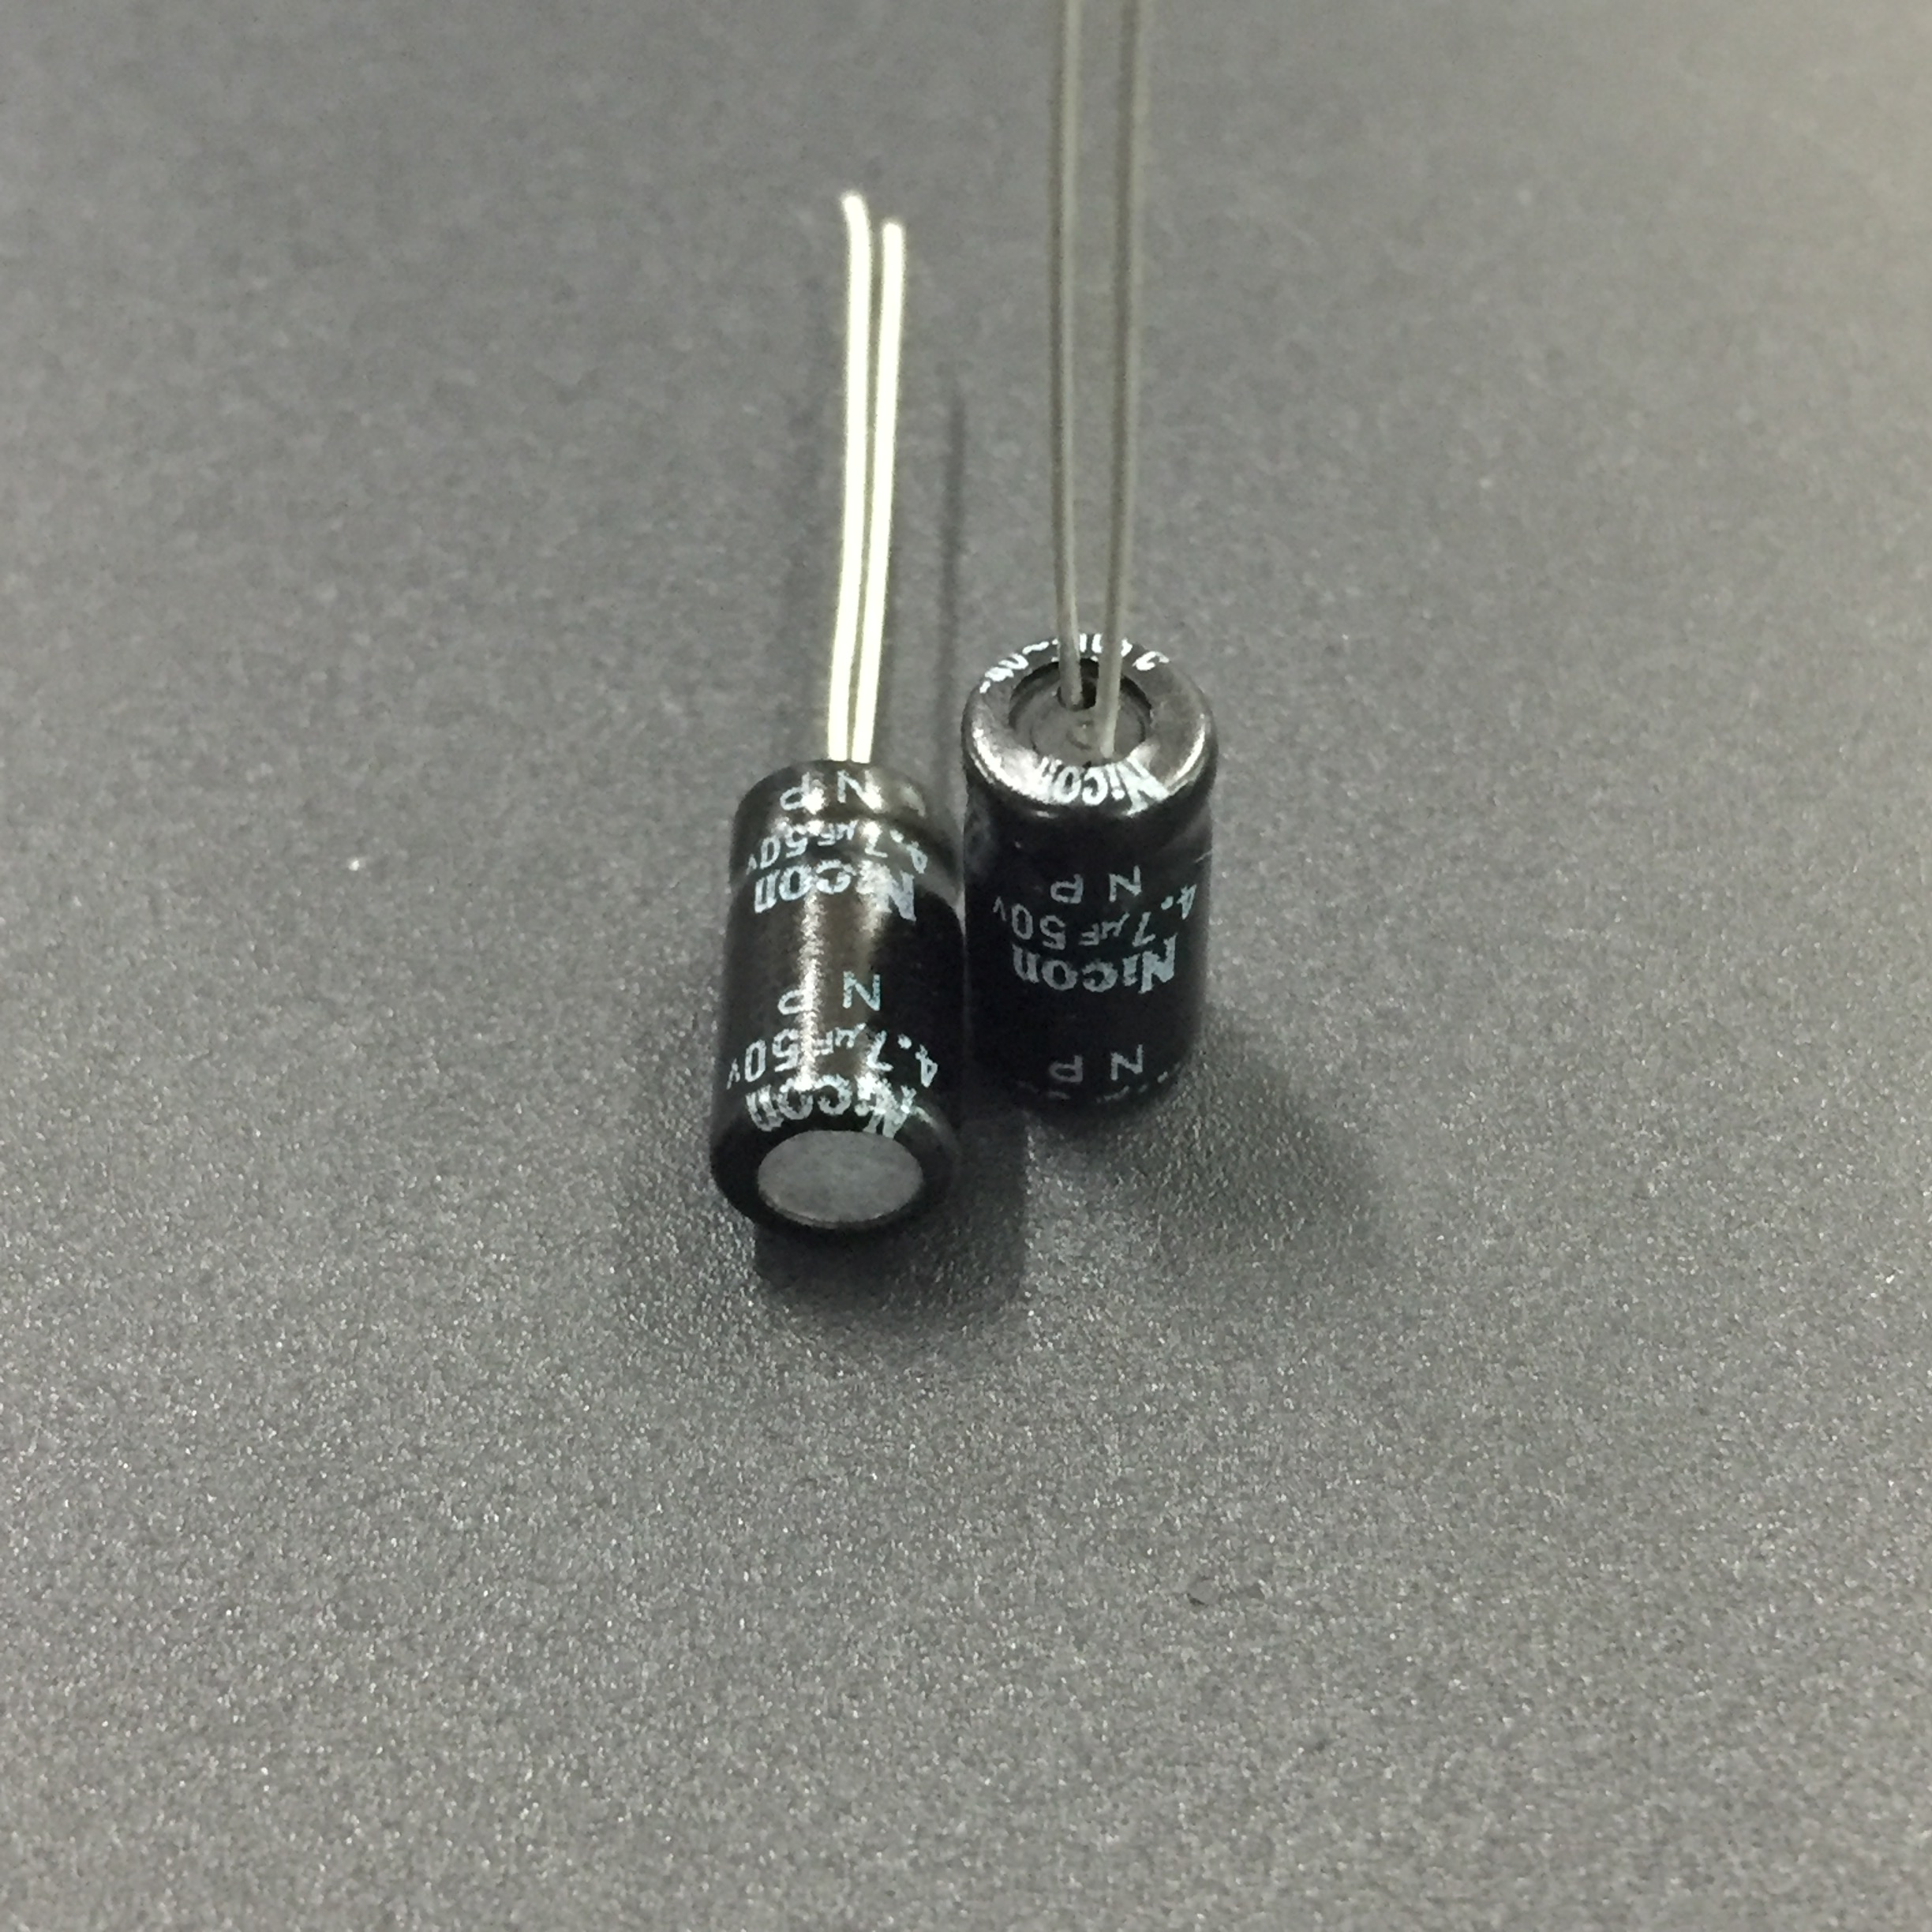 10pcs/100pcs 4.7uF 50V NICON NP 6.3x11mm 50V4.7uF Good Quality Aluminum Electrolytic Capacitor